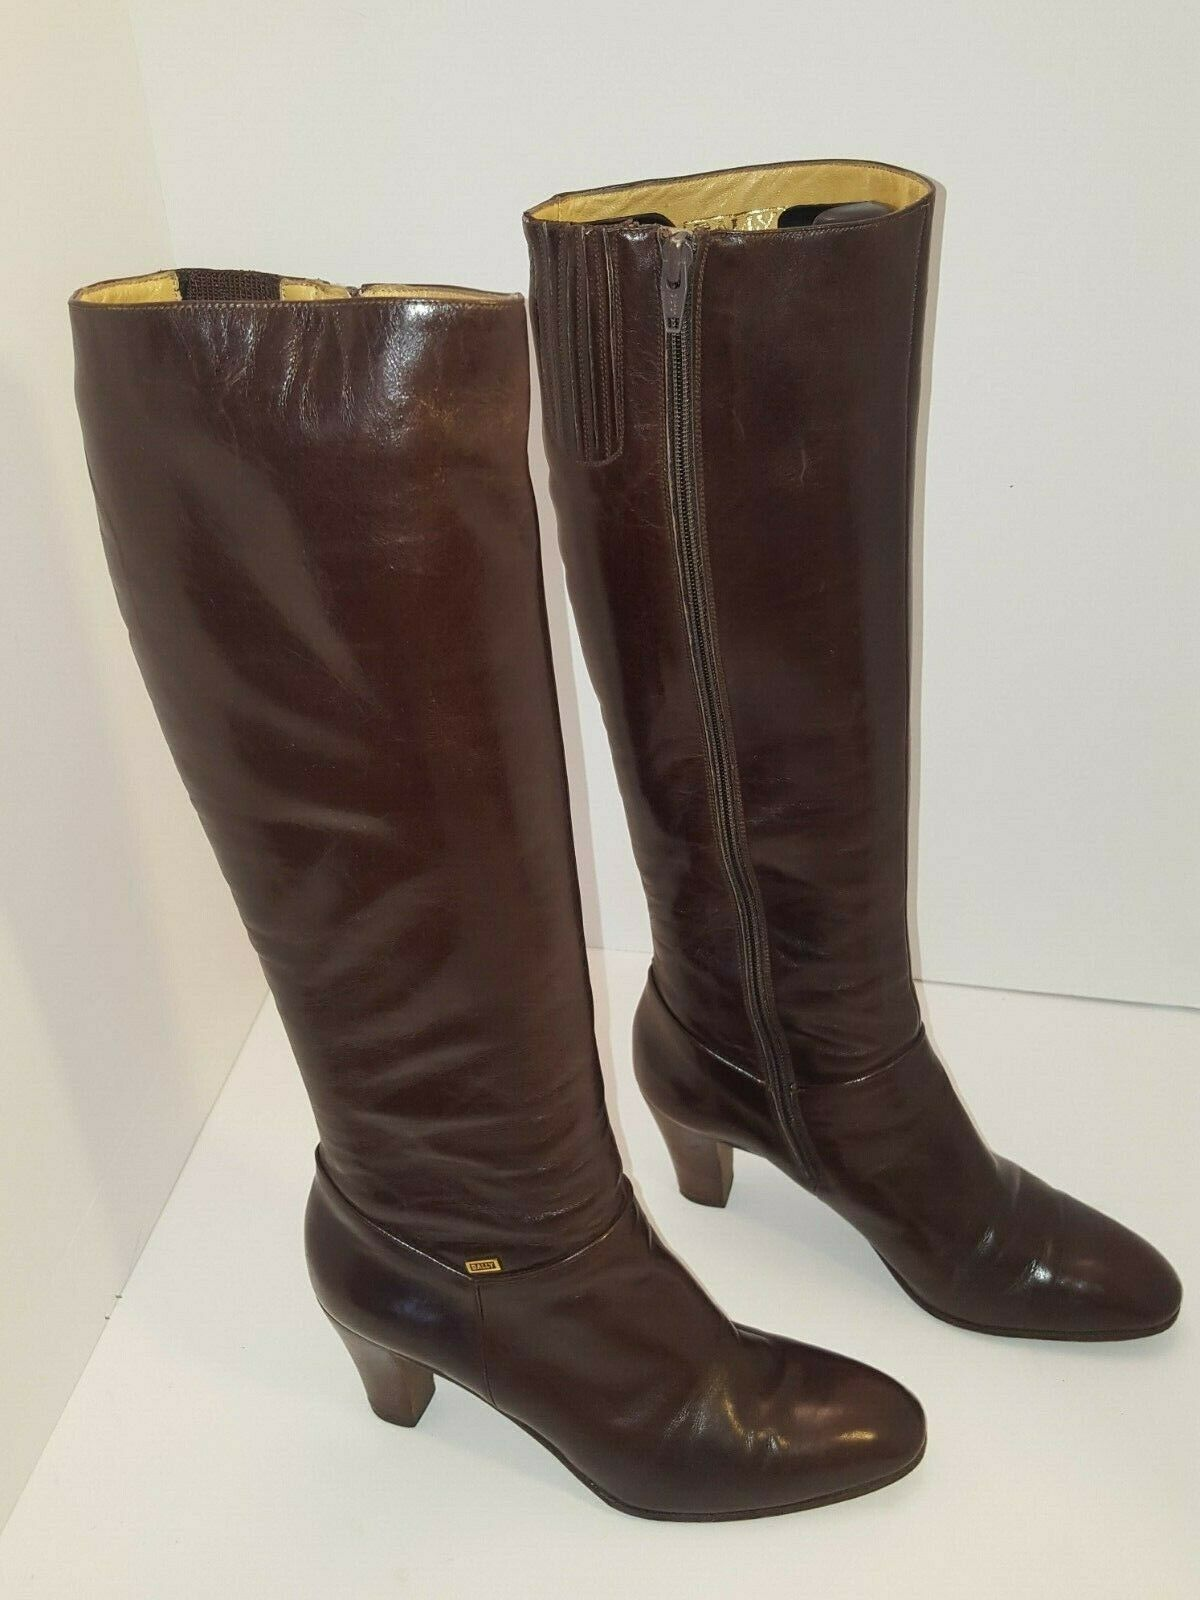 Bally Knee High Size 7 Brown Leather Side Zipper  Made in